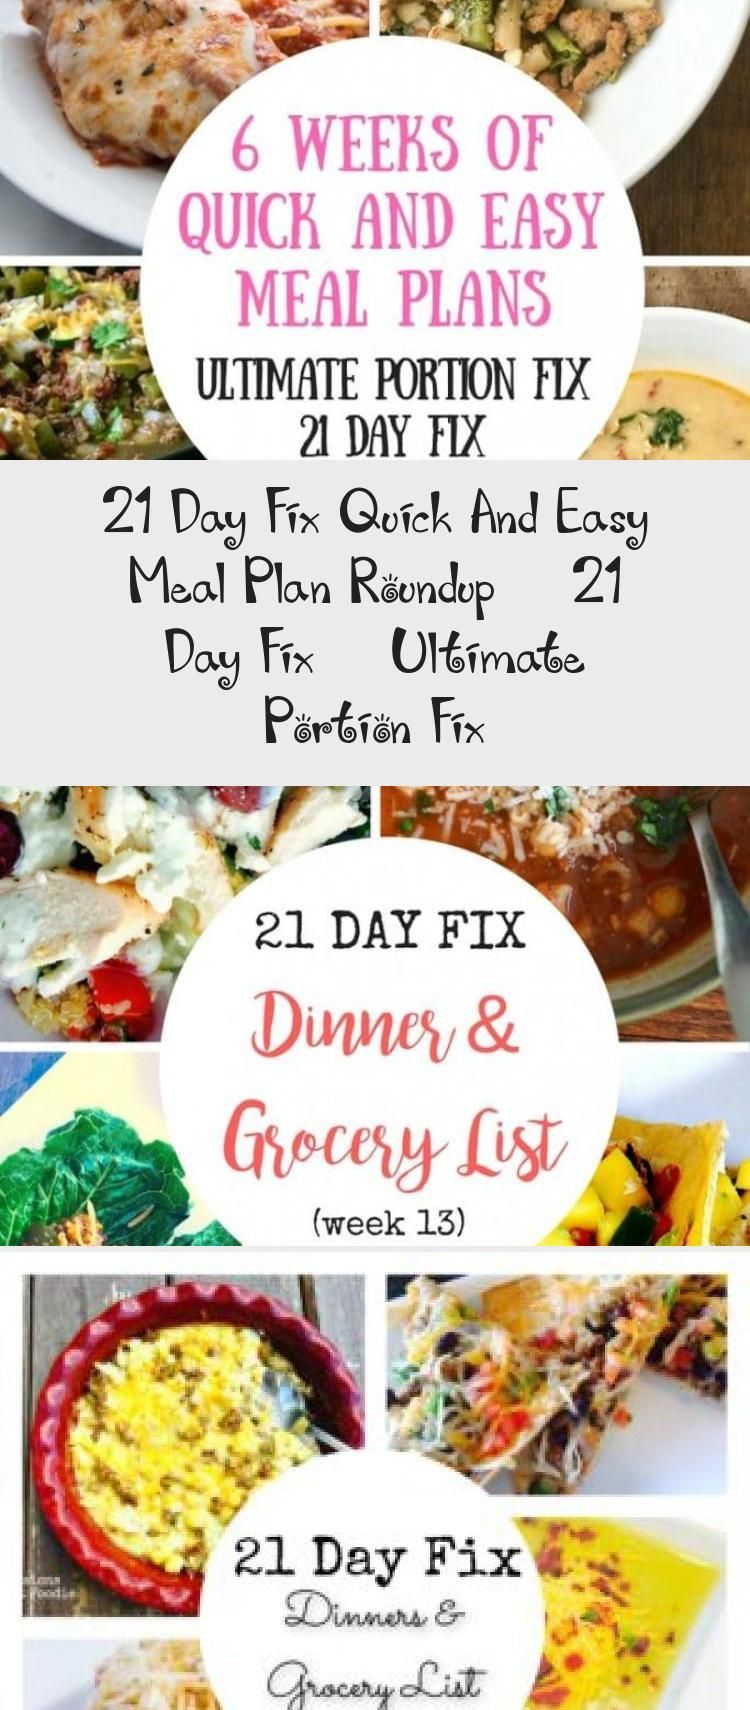 21 Day Fix Quick And Easy Meal Plan Roundup  21 Day Fix  Ultimate Portion Fix  Diet  Diet Meal Plans